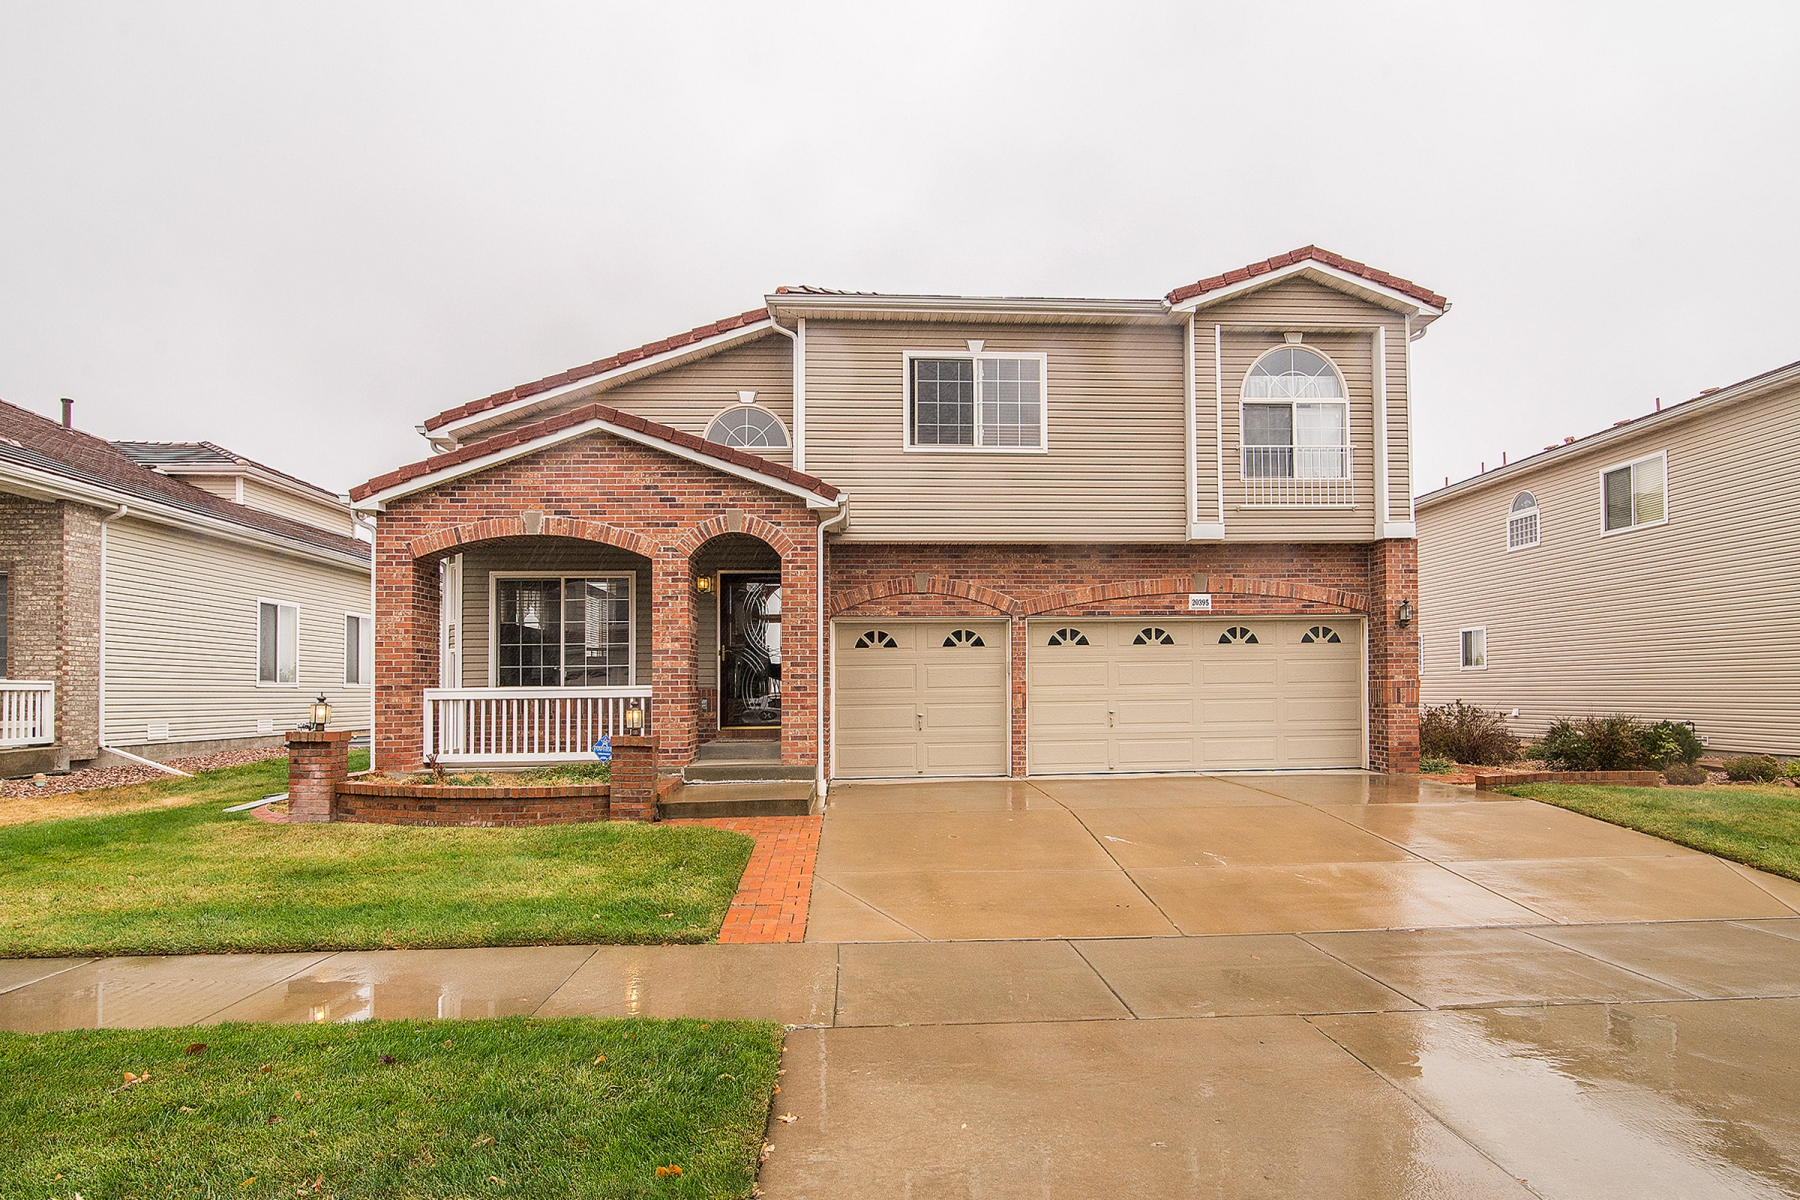 Single Family Home for Sale at Most sought out location in Green Valley Ranch 20395 E 49th Ave Denver, Colorado 80249 United States